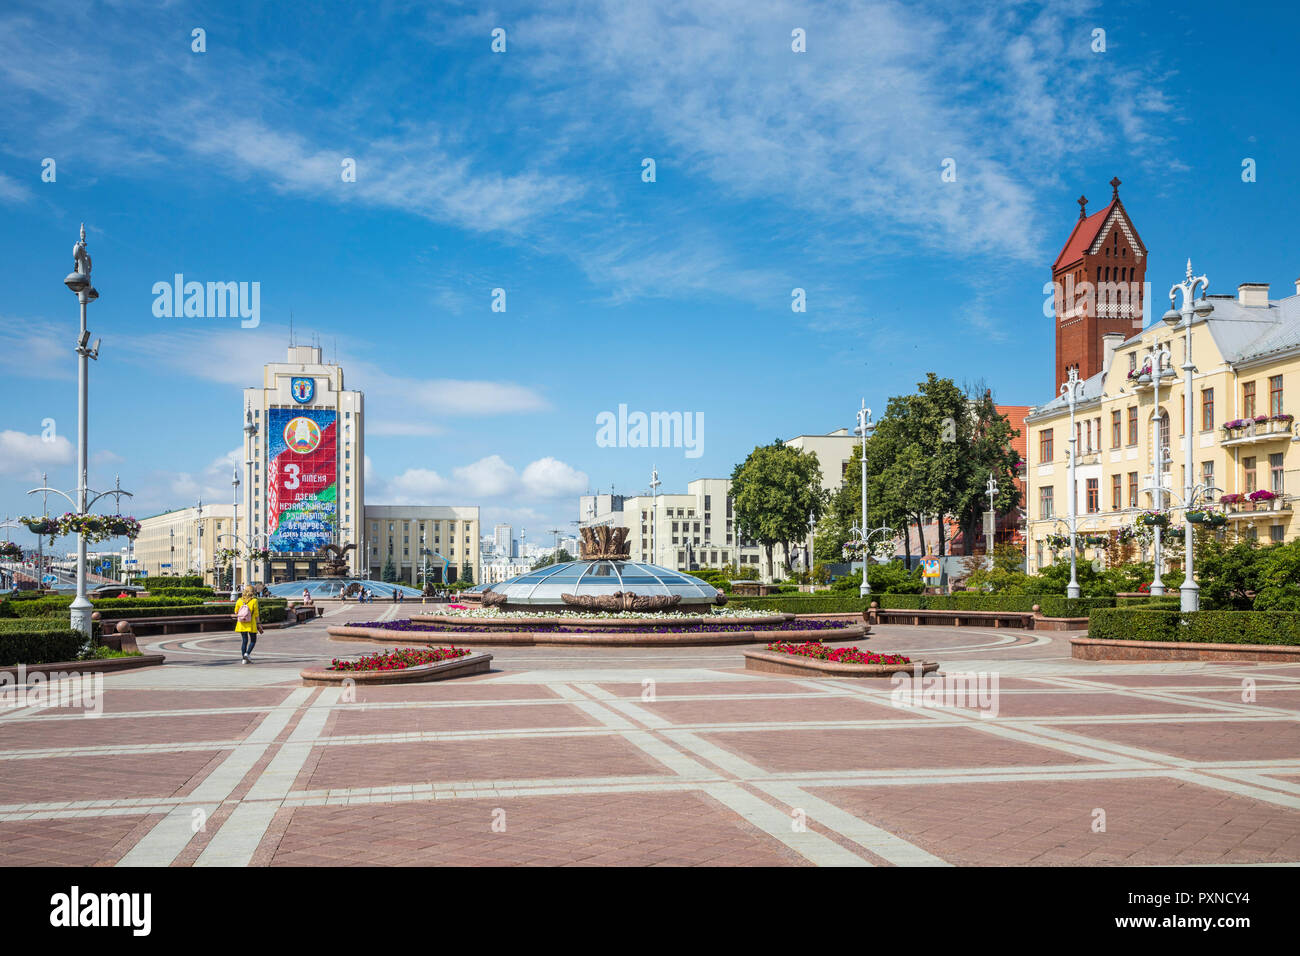 Independence Square, Minsk, Belarus - Stock Image